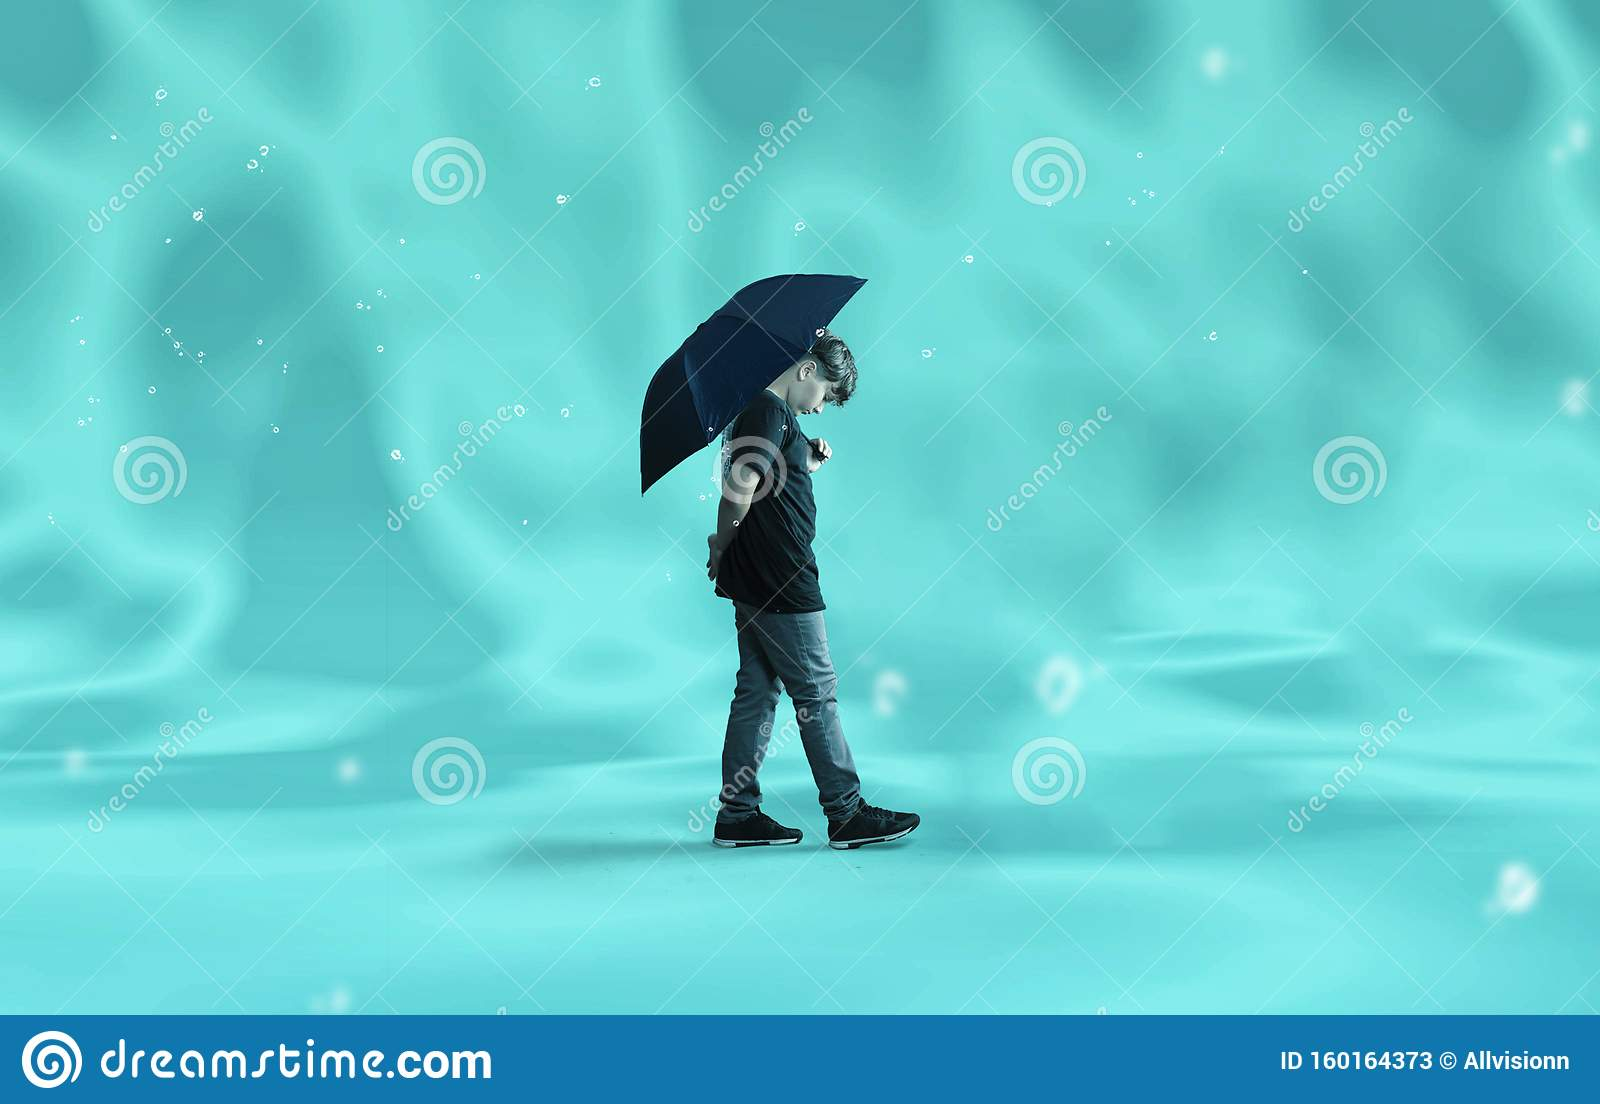 9 670 Person Holding Umbrella Photos Free Royalty Free Stock Photos From Dreamstime